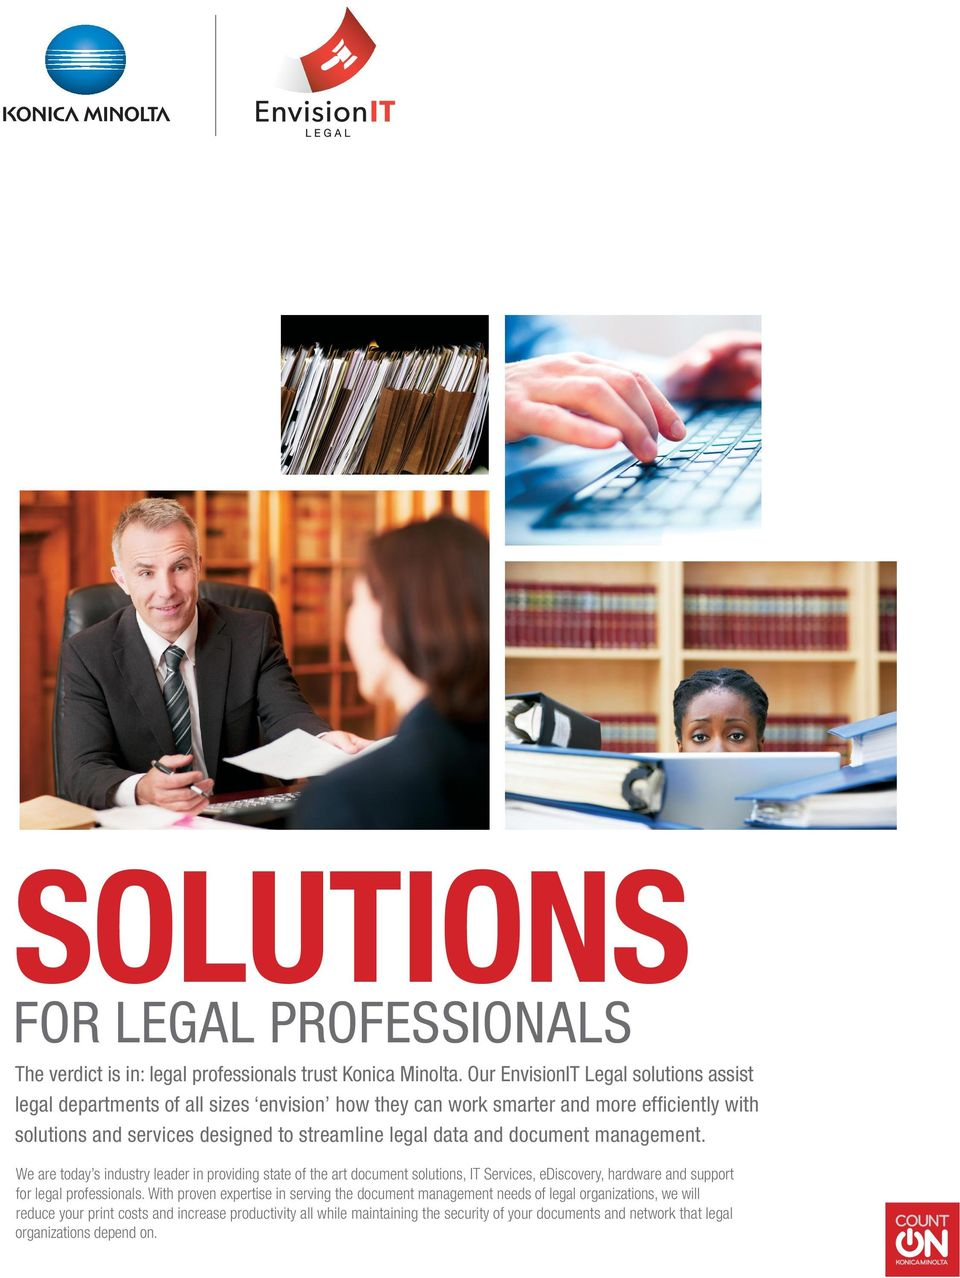 legal data and document management.